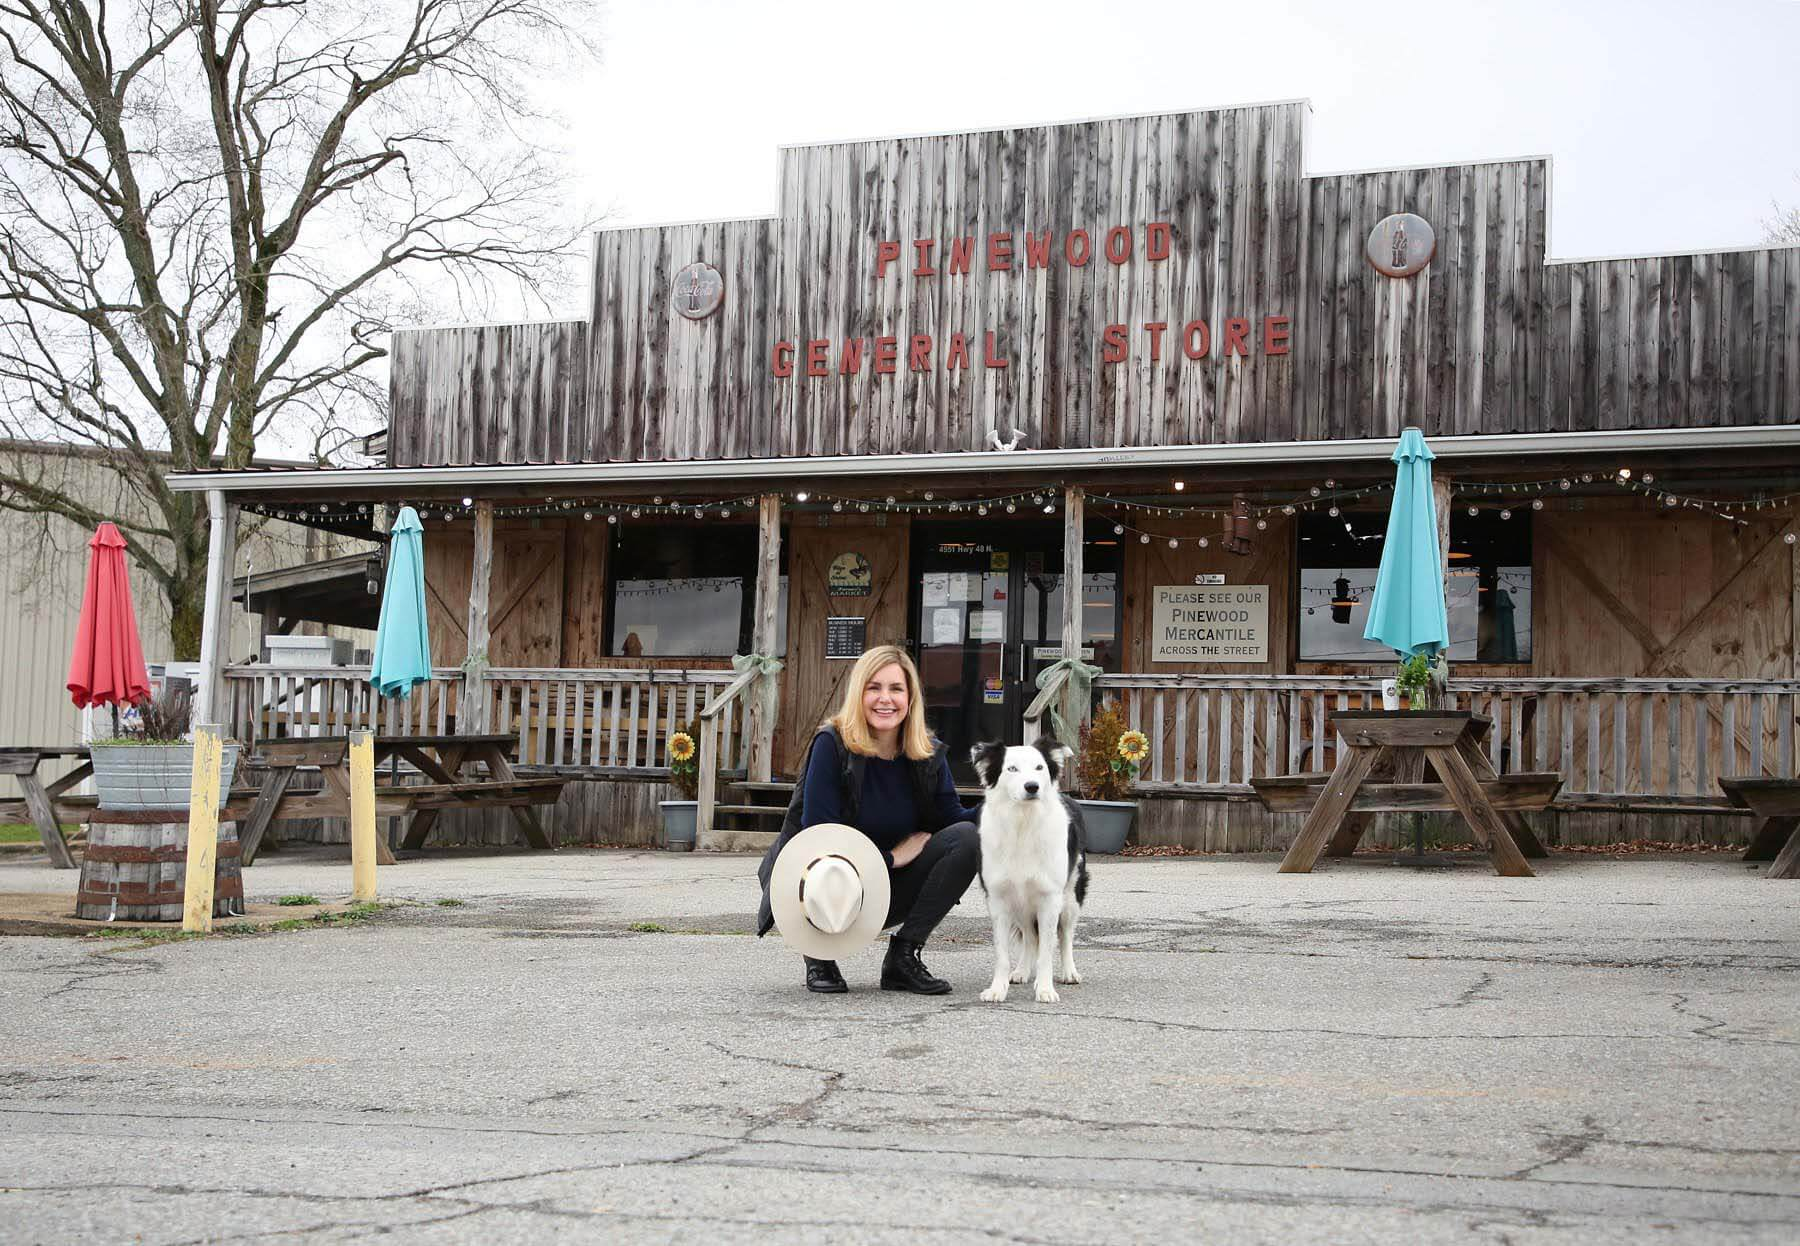 Mee and her dog in front of the Pinewood Kitchen restaurant